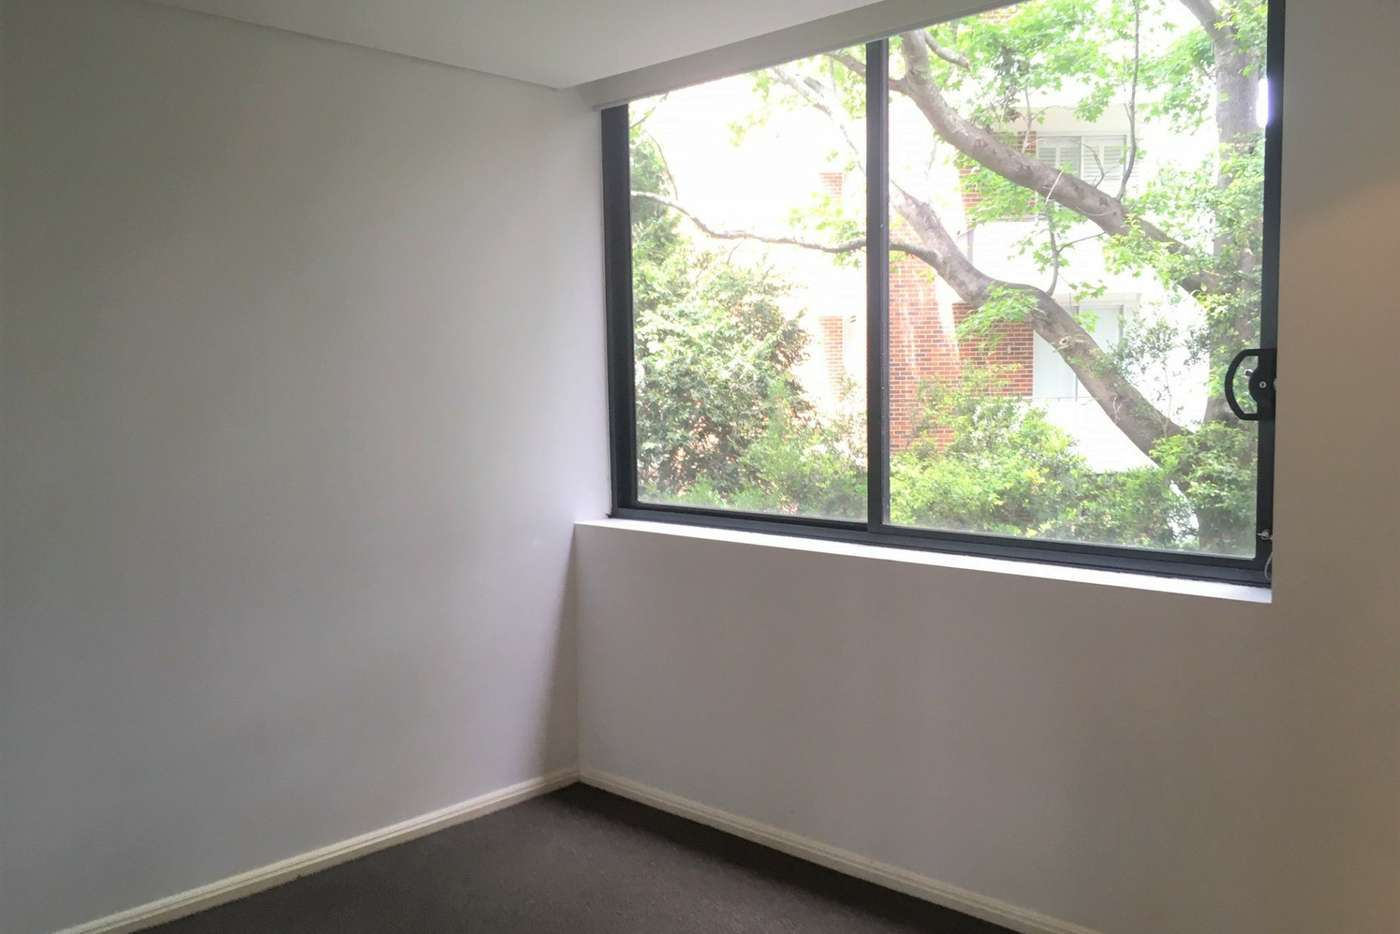 Sixth view of Homely unit listing, Apartment 348/17-19 Memorial Avenue, St Ives NSW 2075